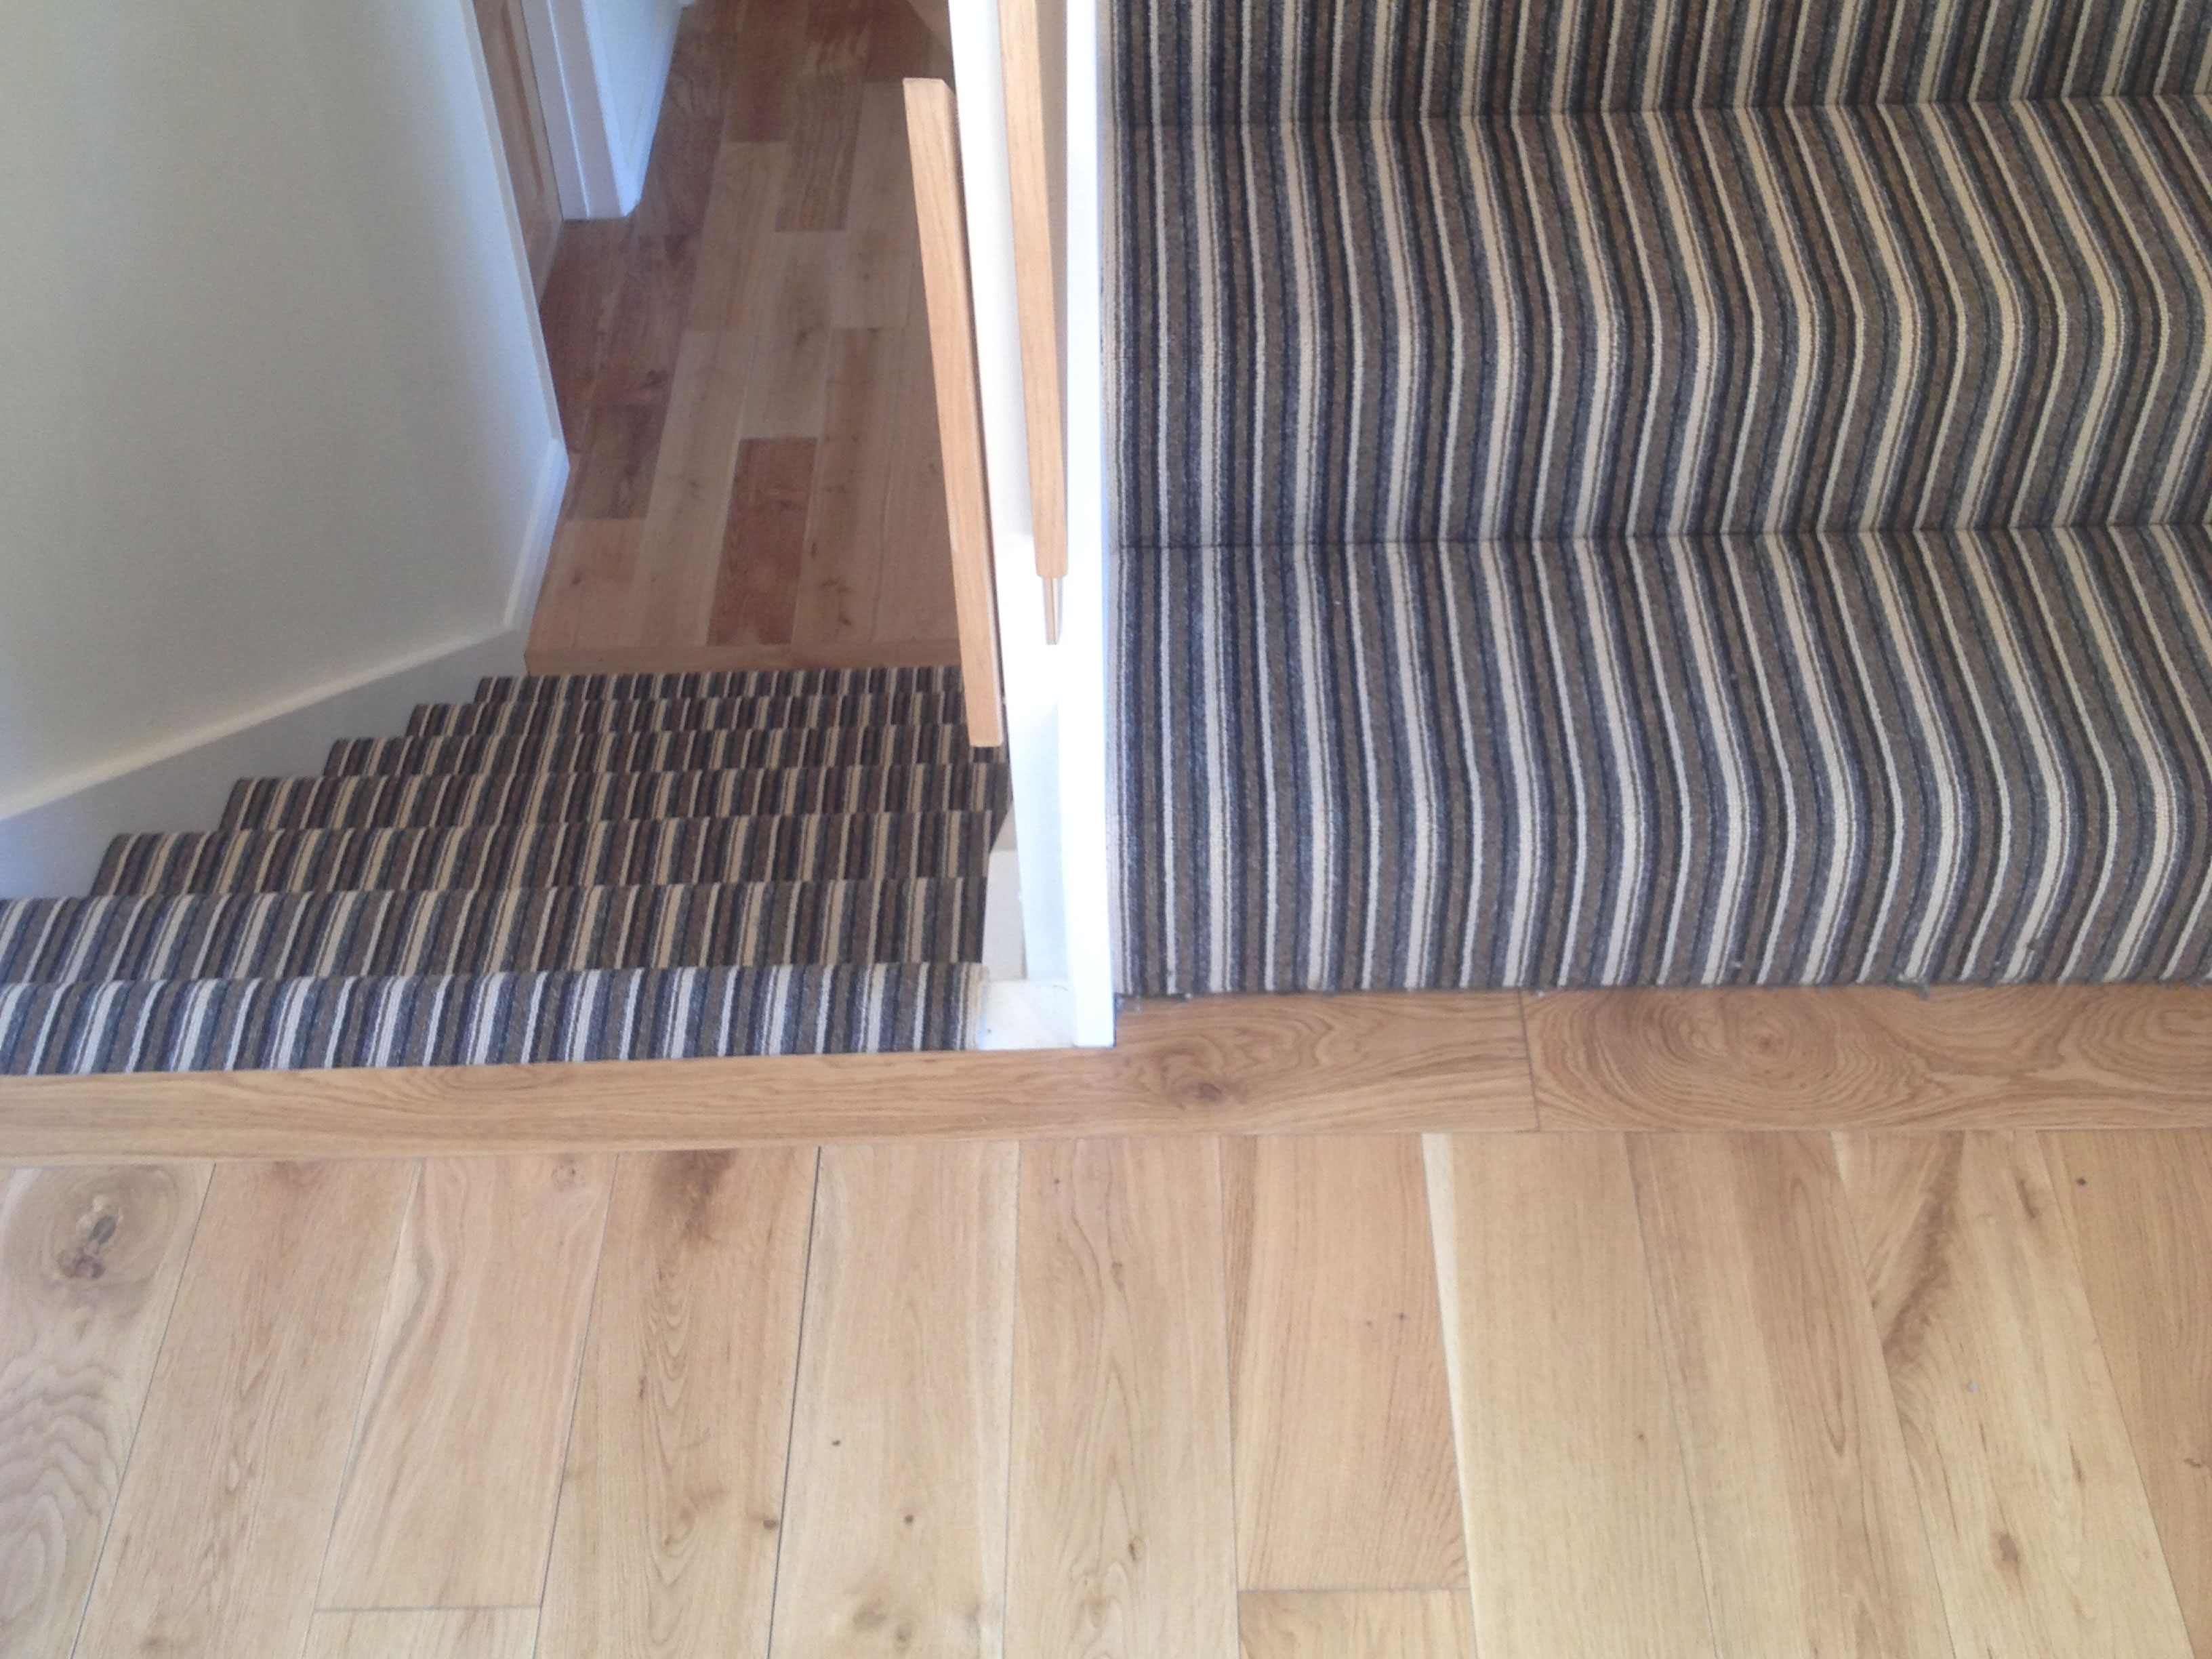 Harley color carpet tiles - Customer Clare Harley